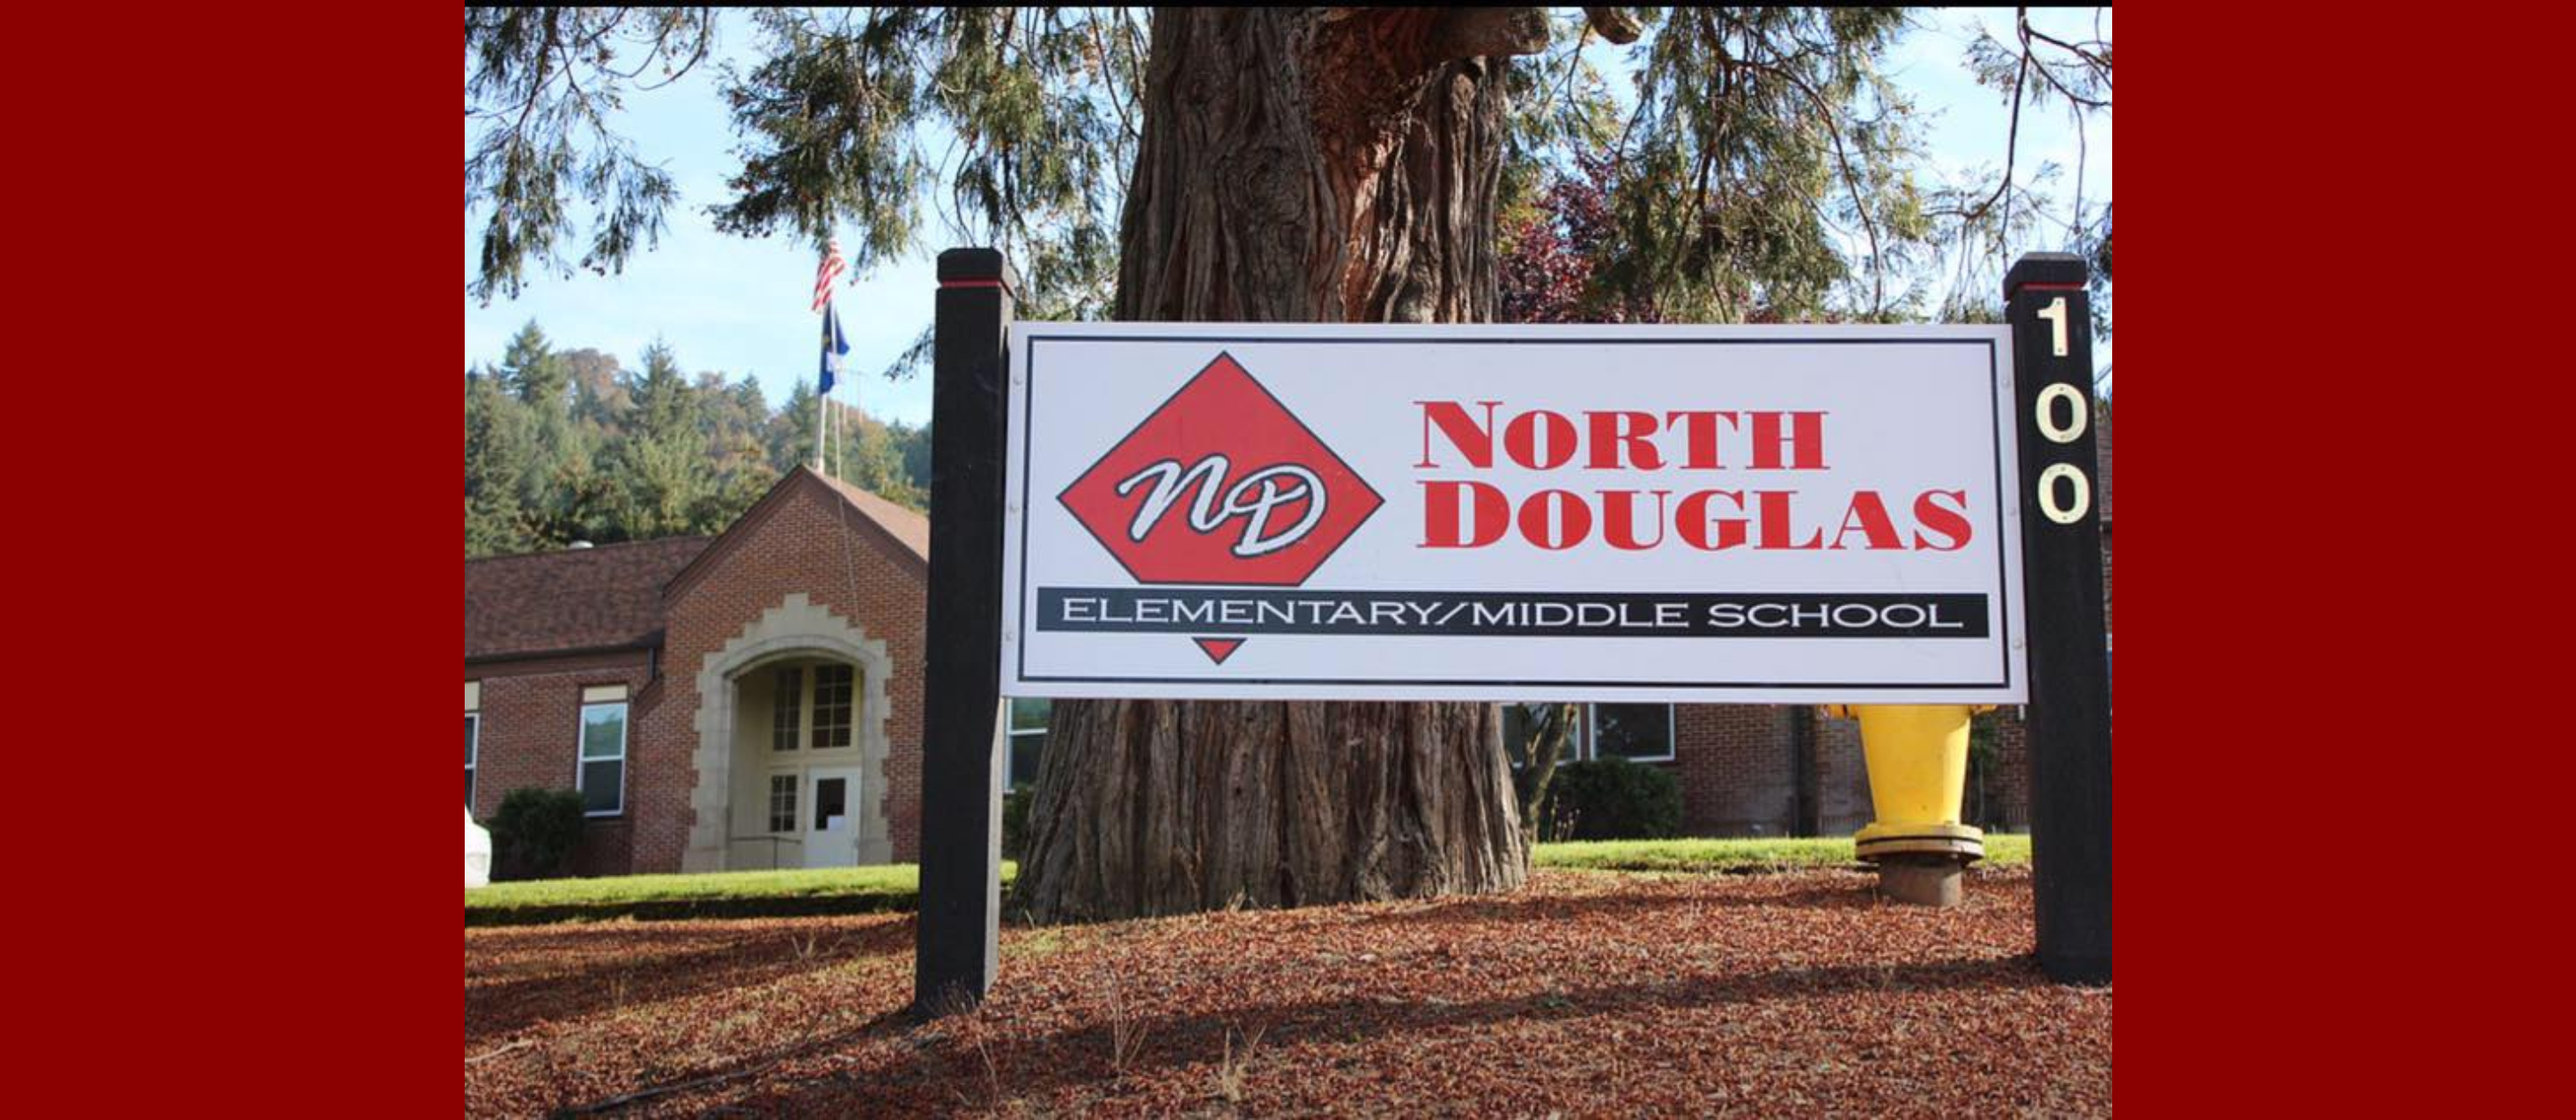 North Douglas Elementary/Middle School sign